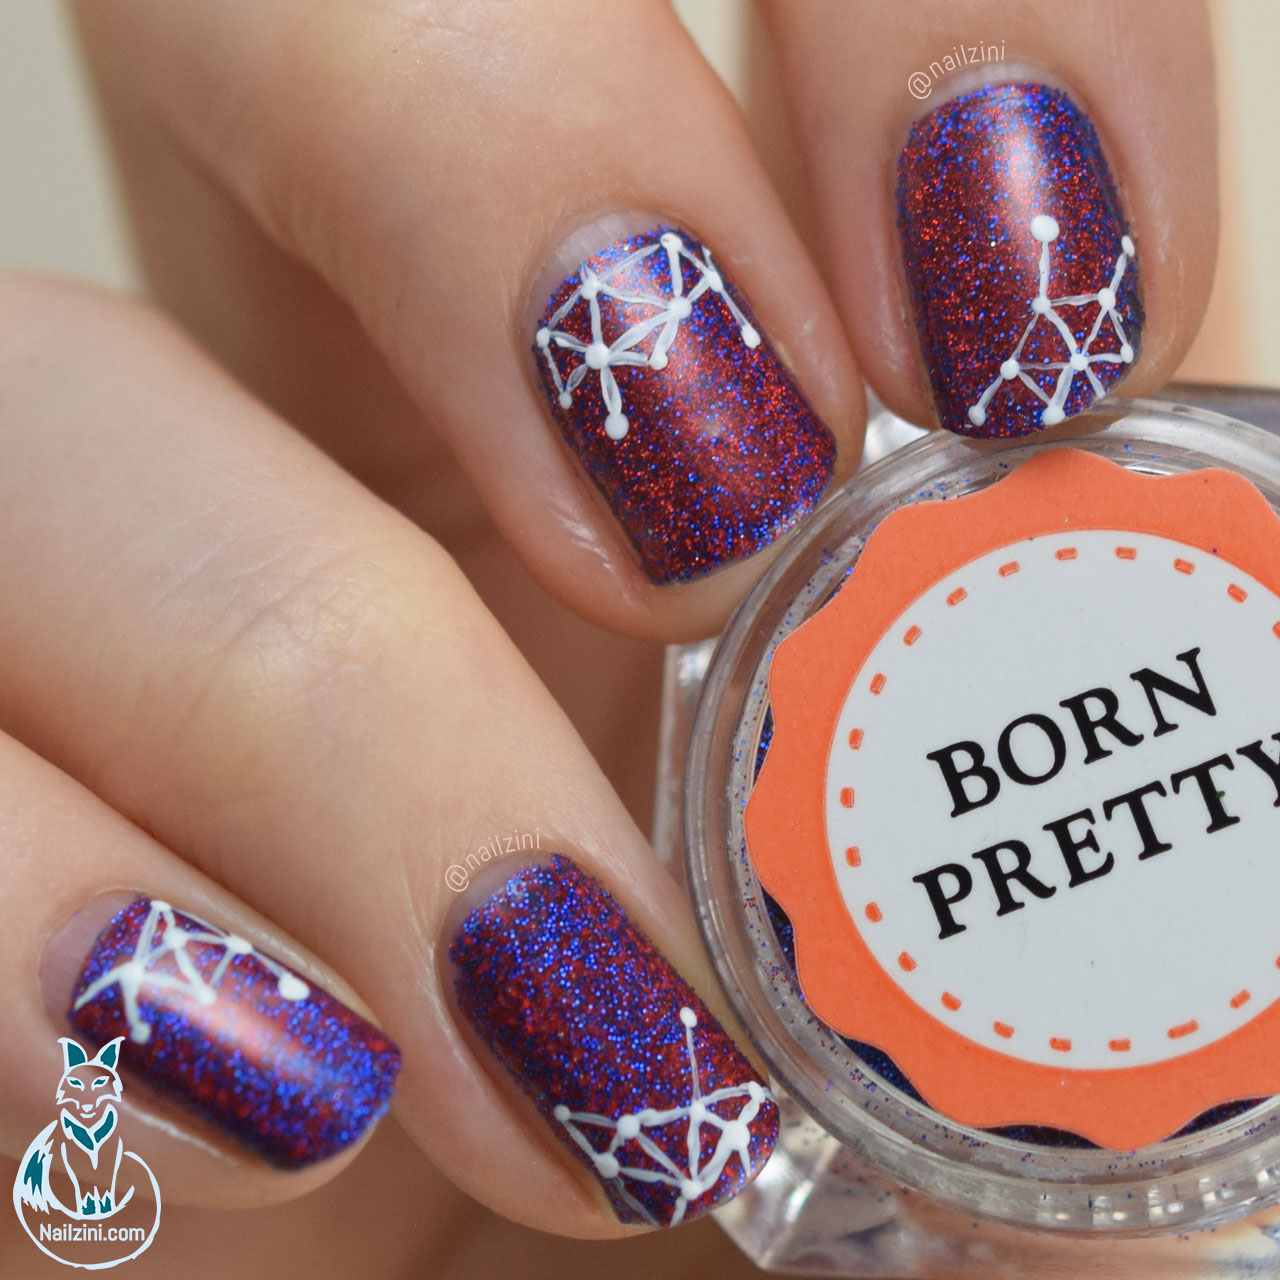 Geometric glitter nail art | Nailzini: A Nail Art Blog